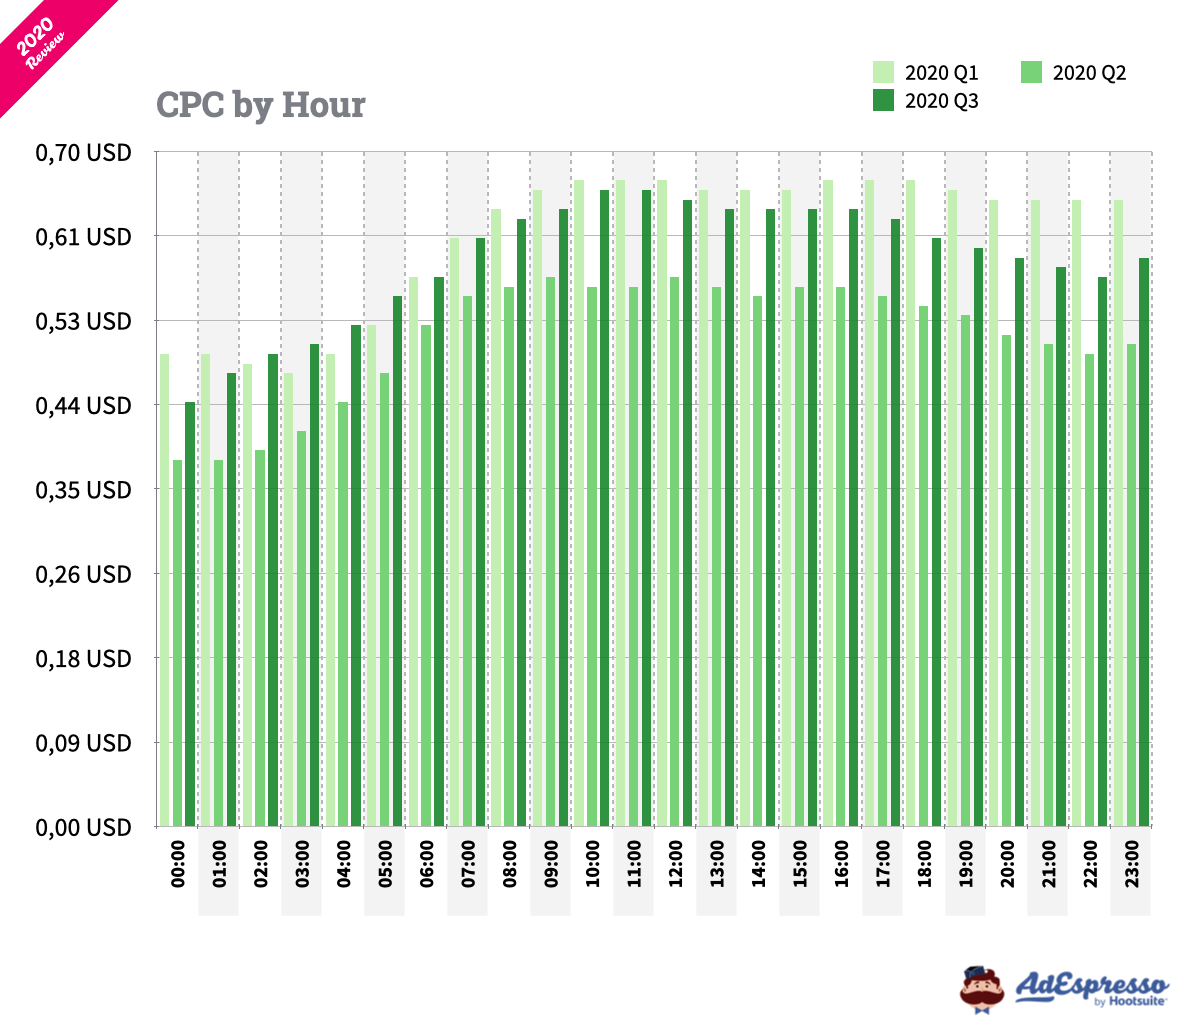 Average CPC on Facebook by hour